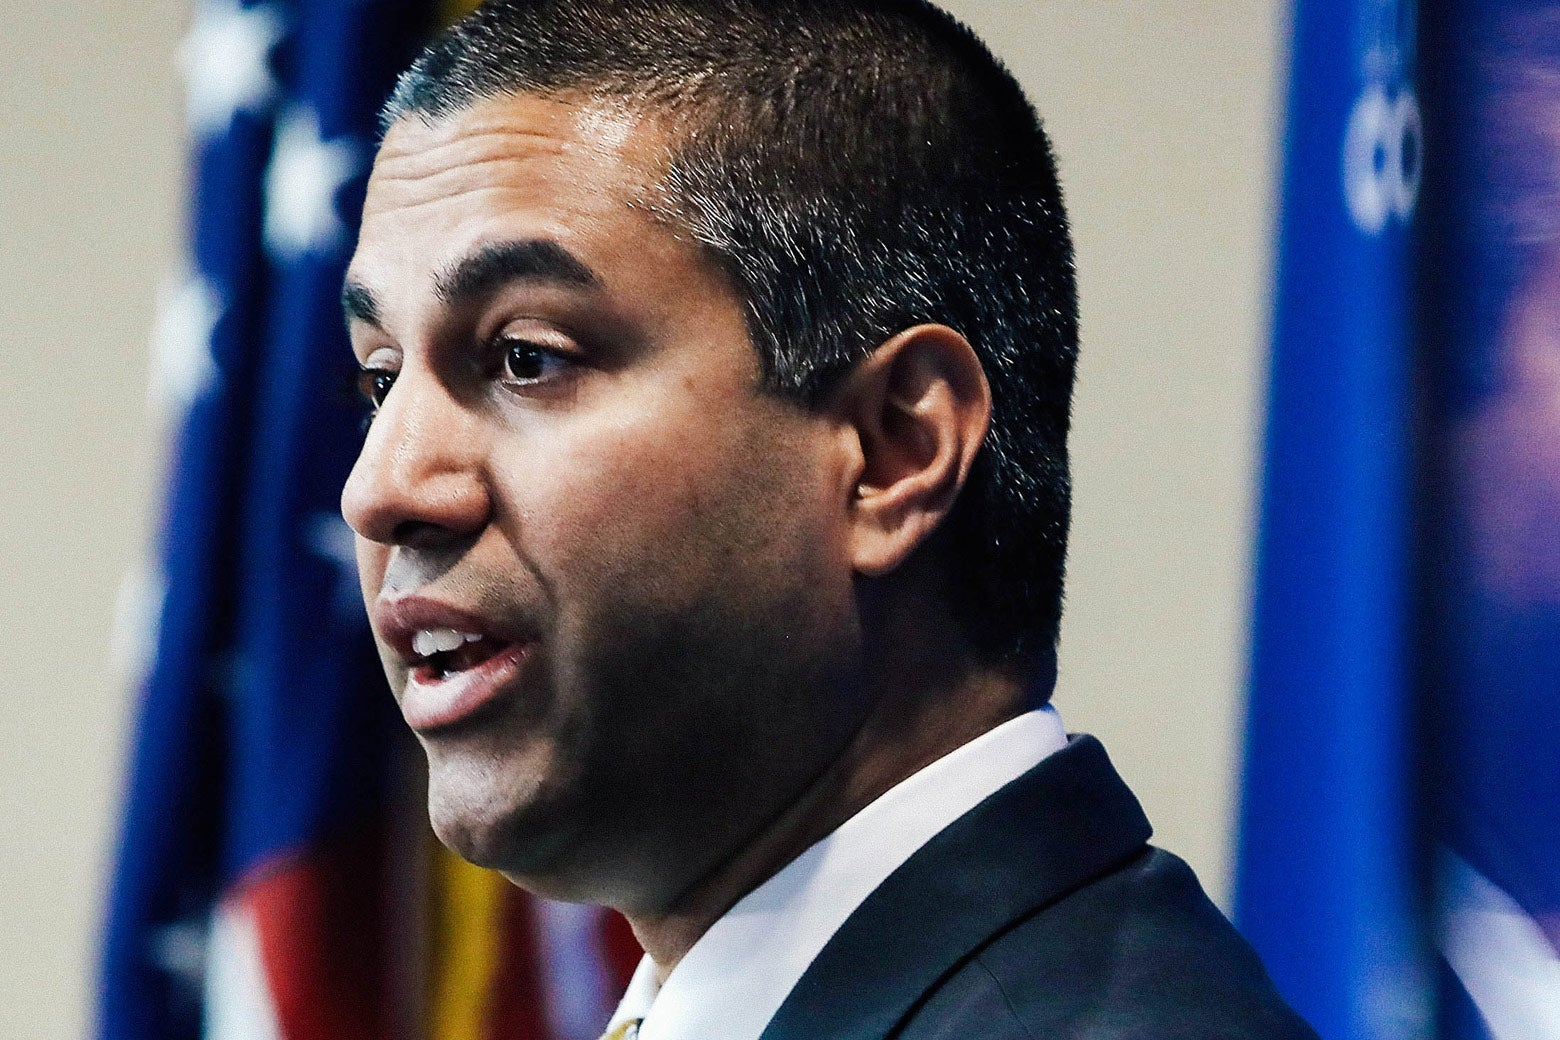 slate.com - April Glaser - Congress Is About to Blow Its Chance to Save Net Neutrality